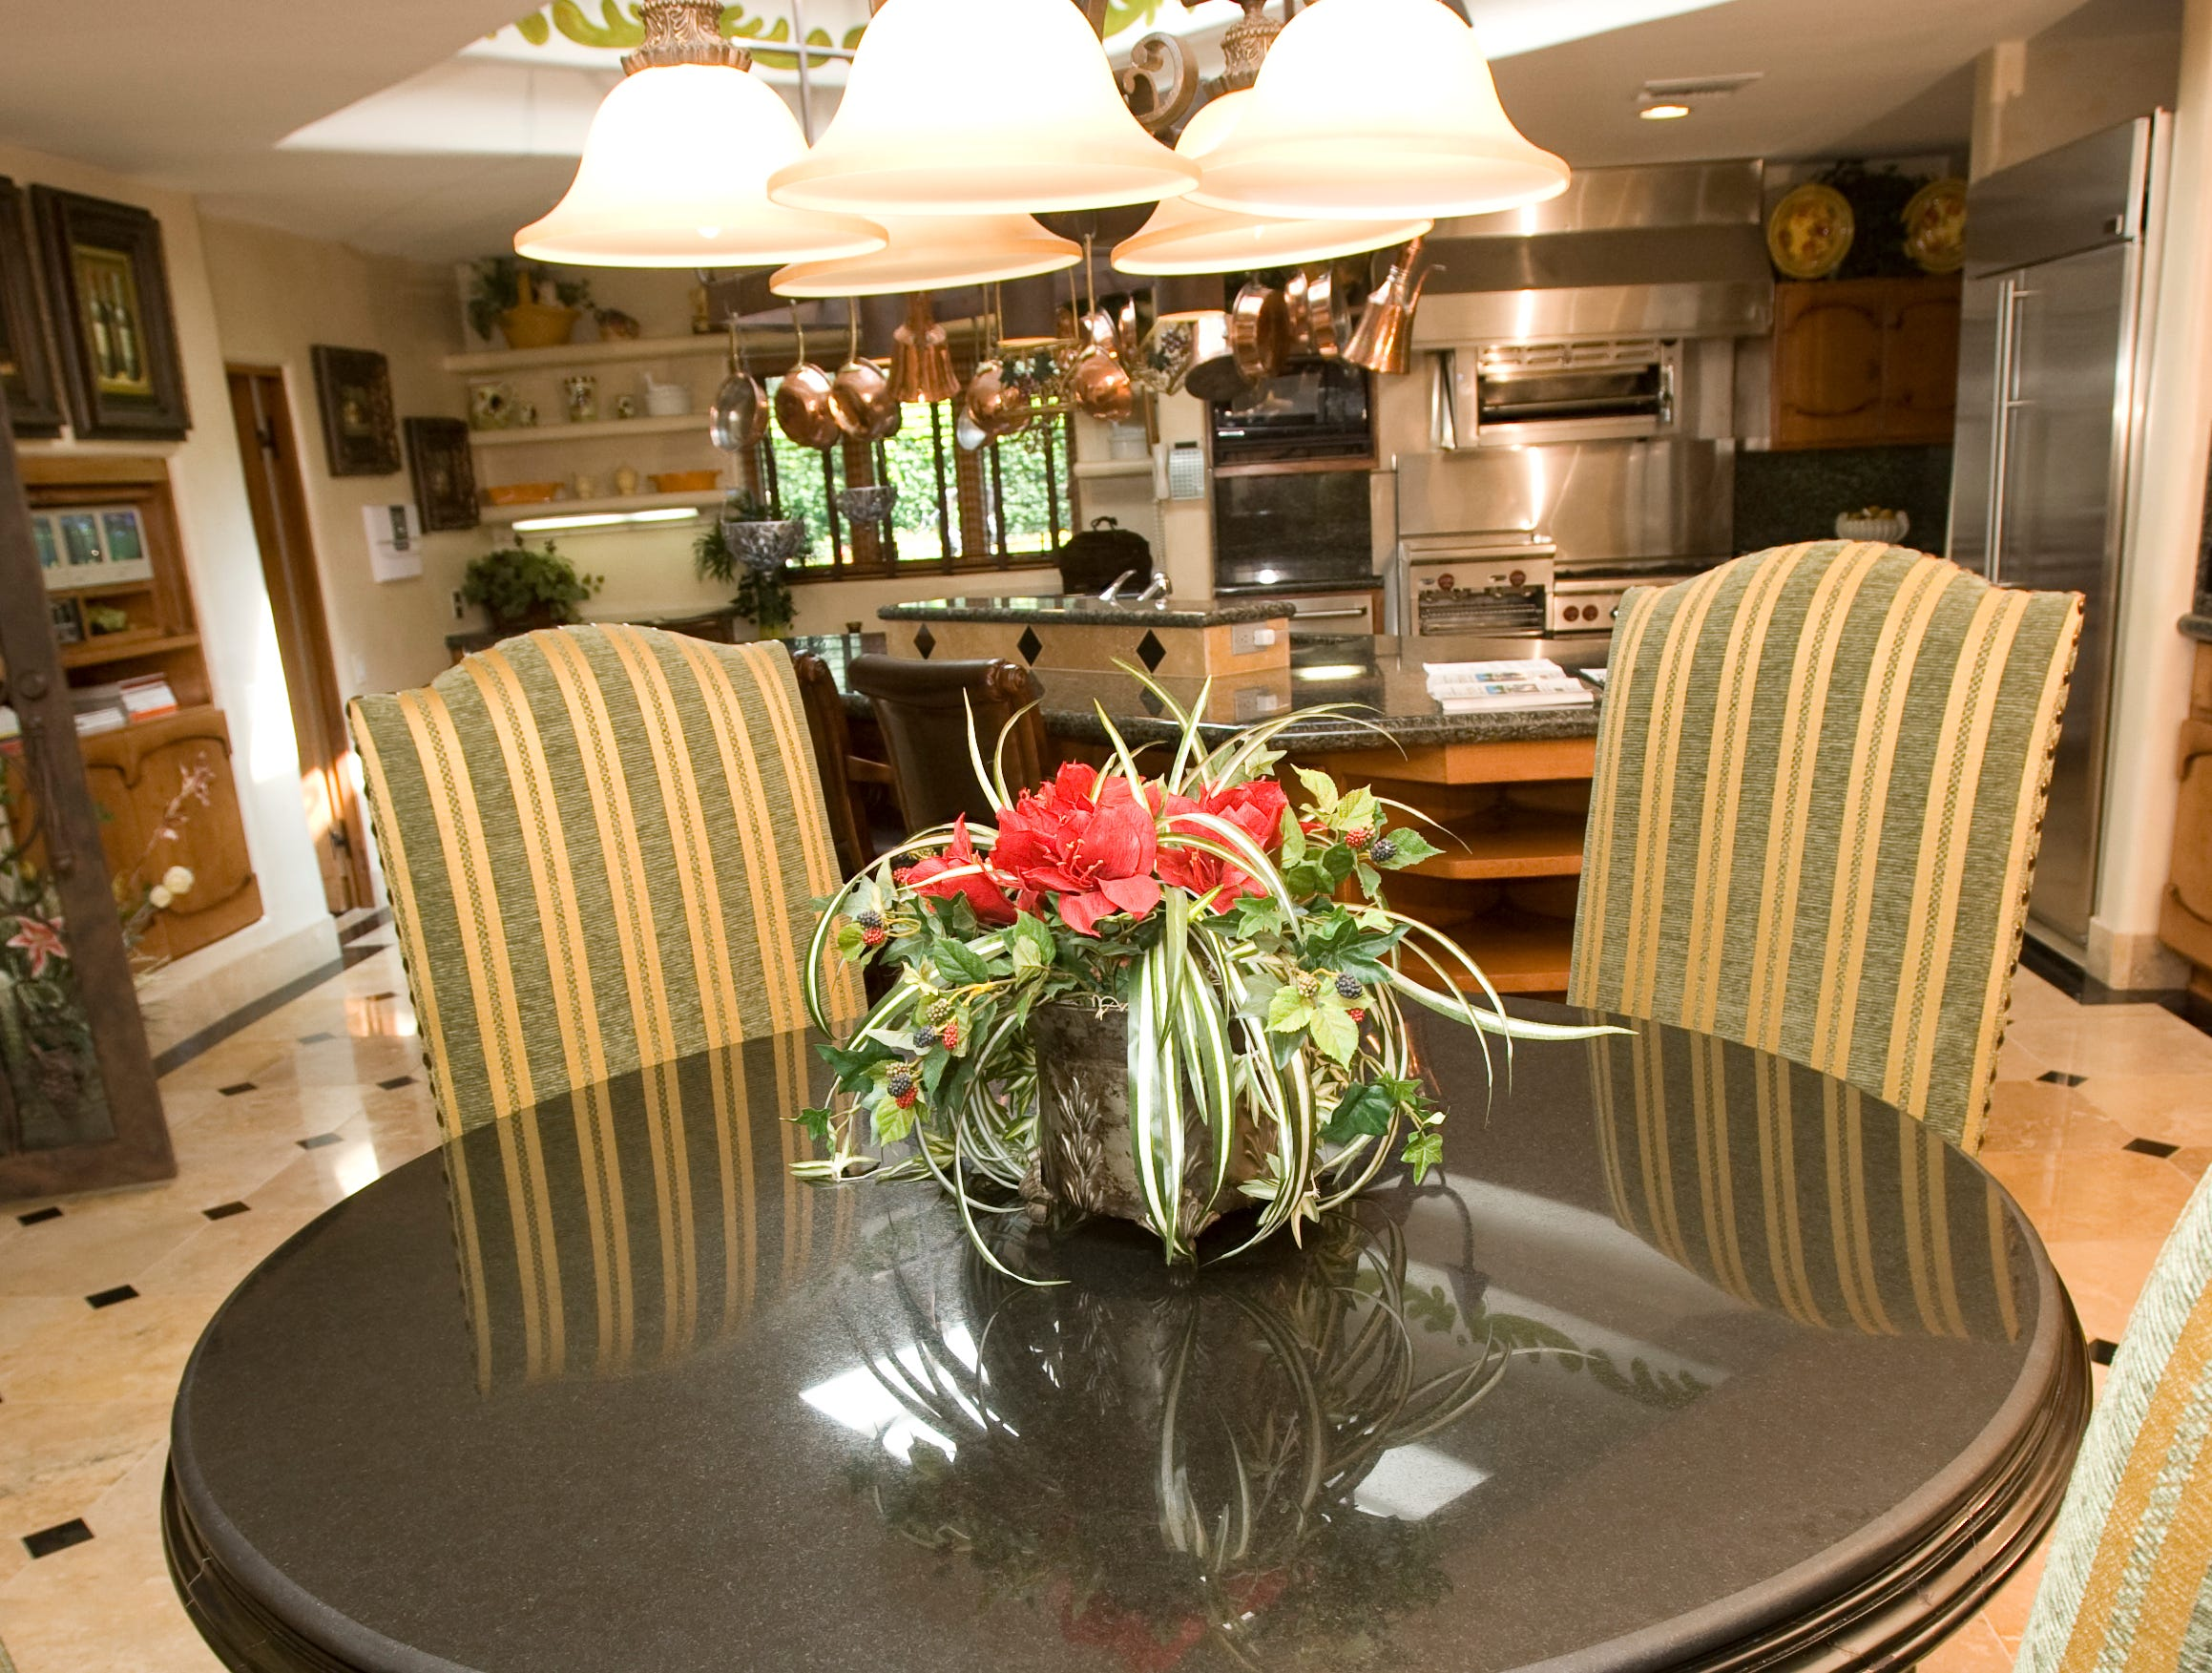 A kitchen table in the former home of  John and Cindy McCain is seen in 2008.